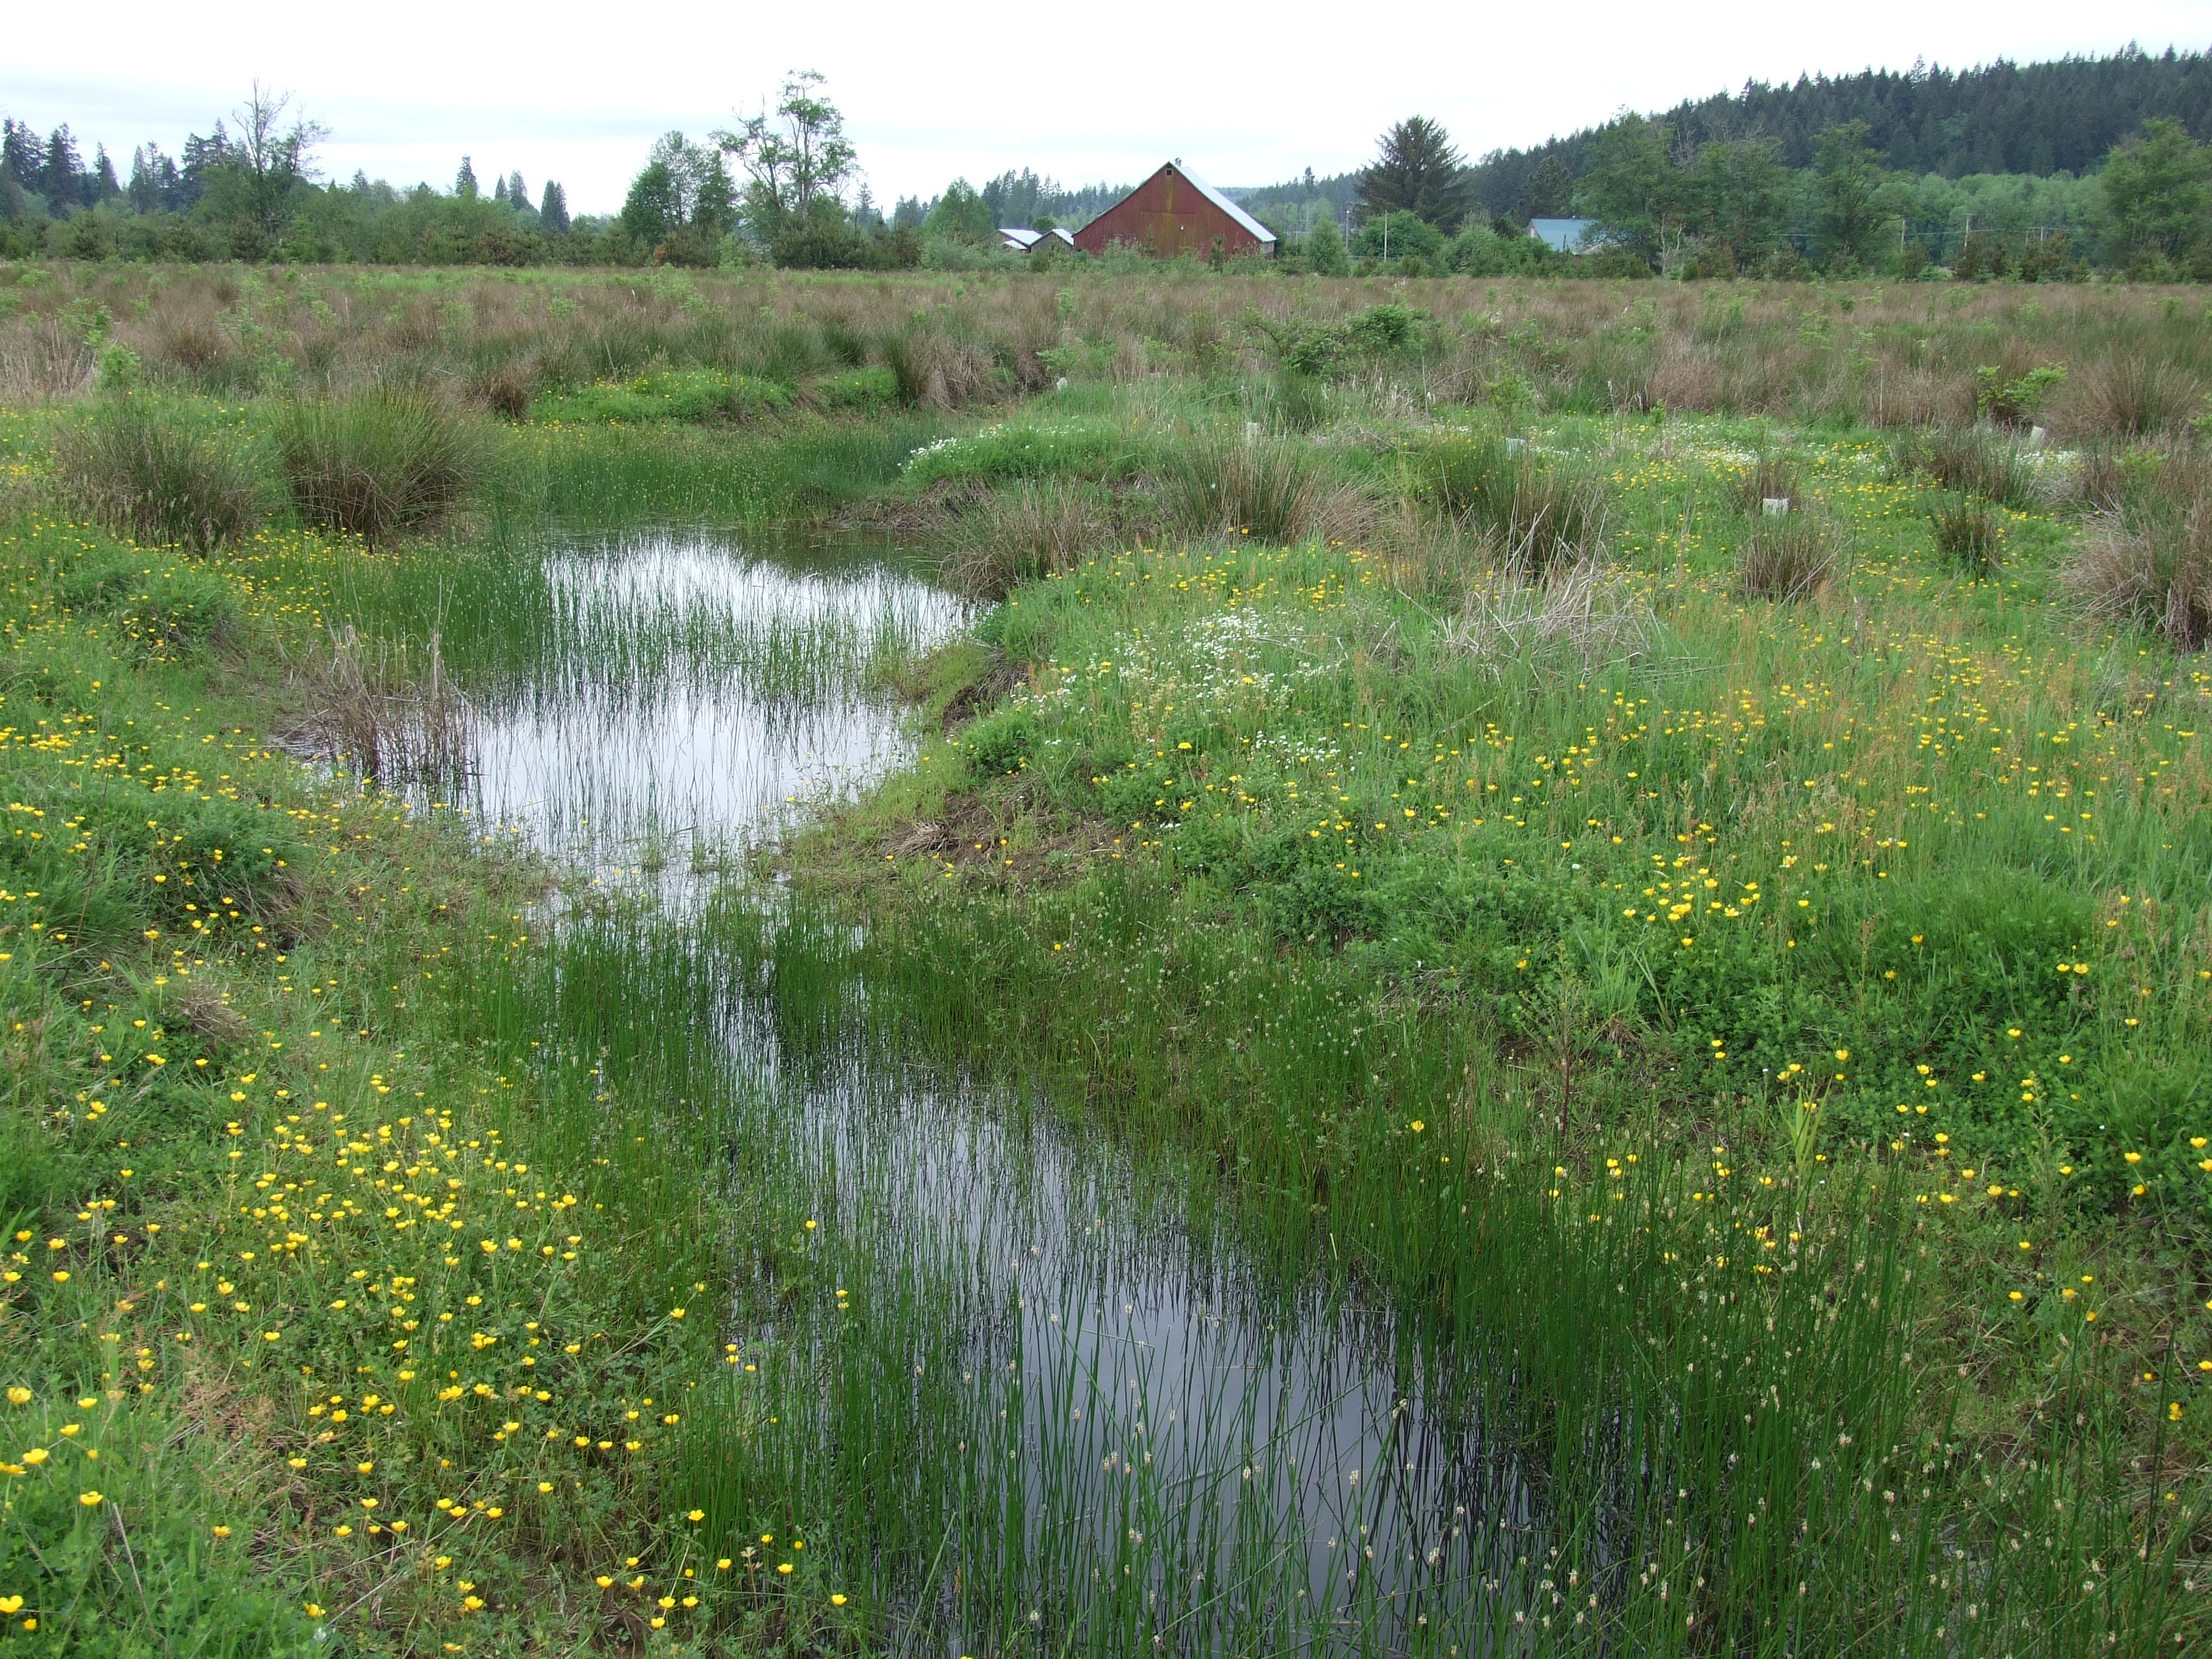 North Fork Newaukum Bank in 2008, showing standing water and flowering, grass-like vegetation.